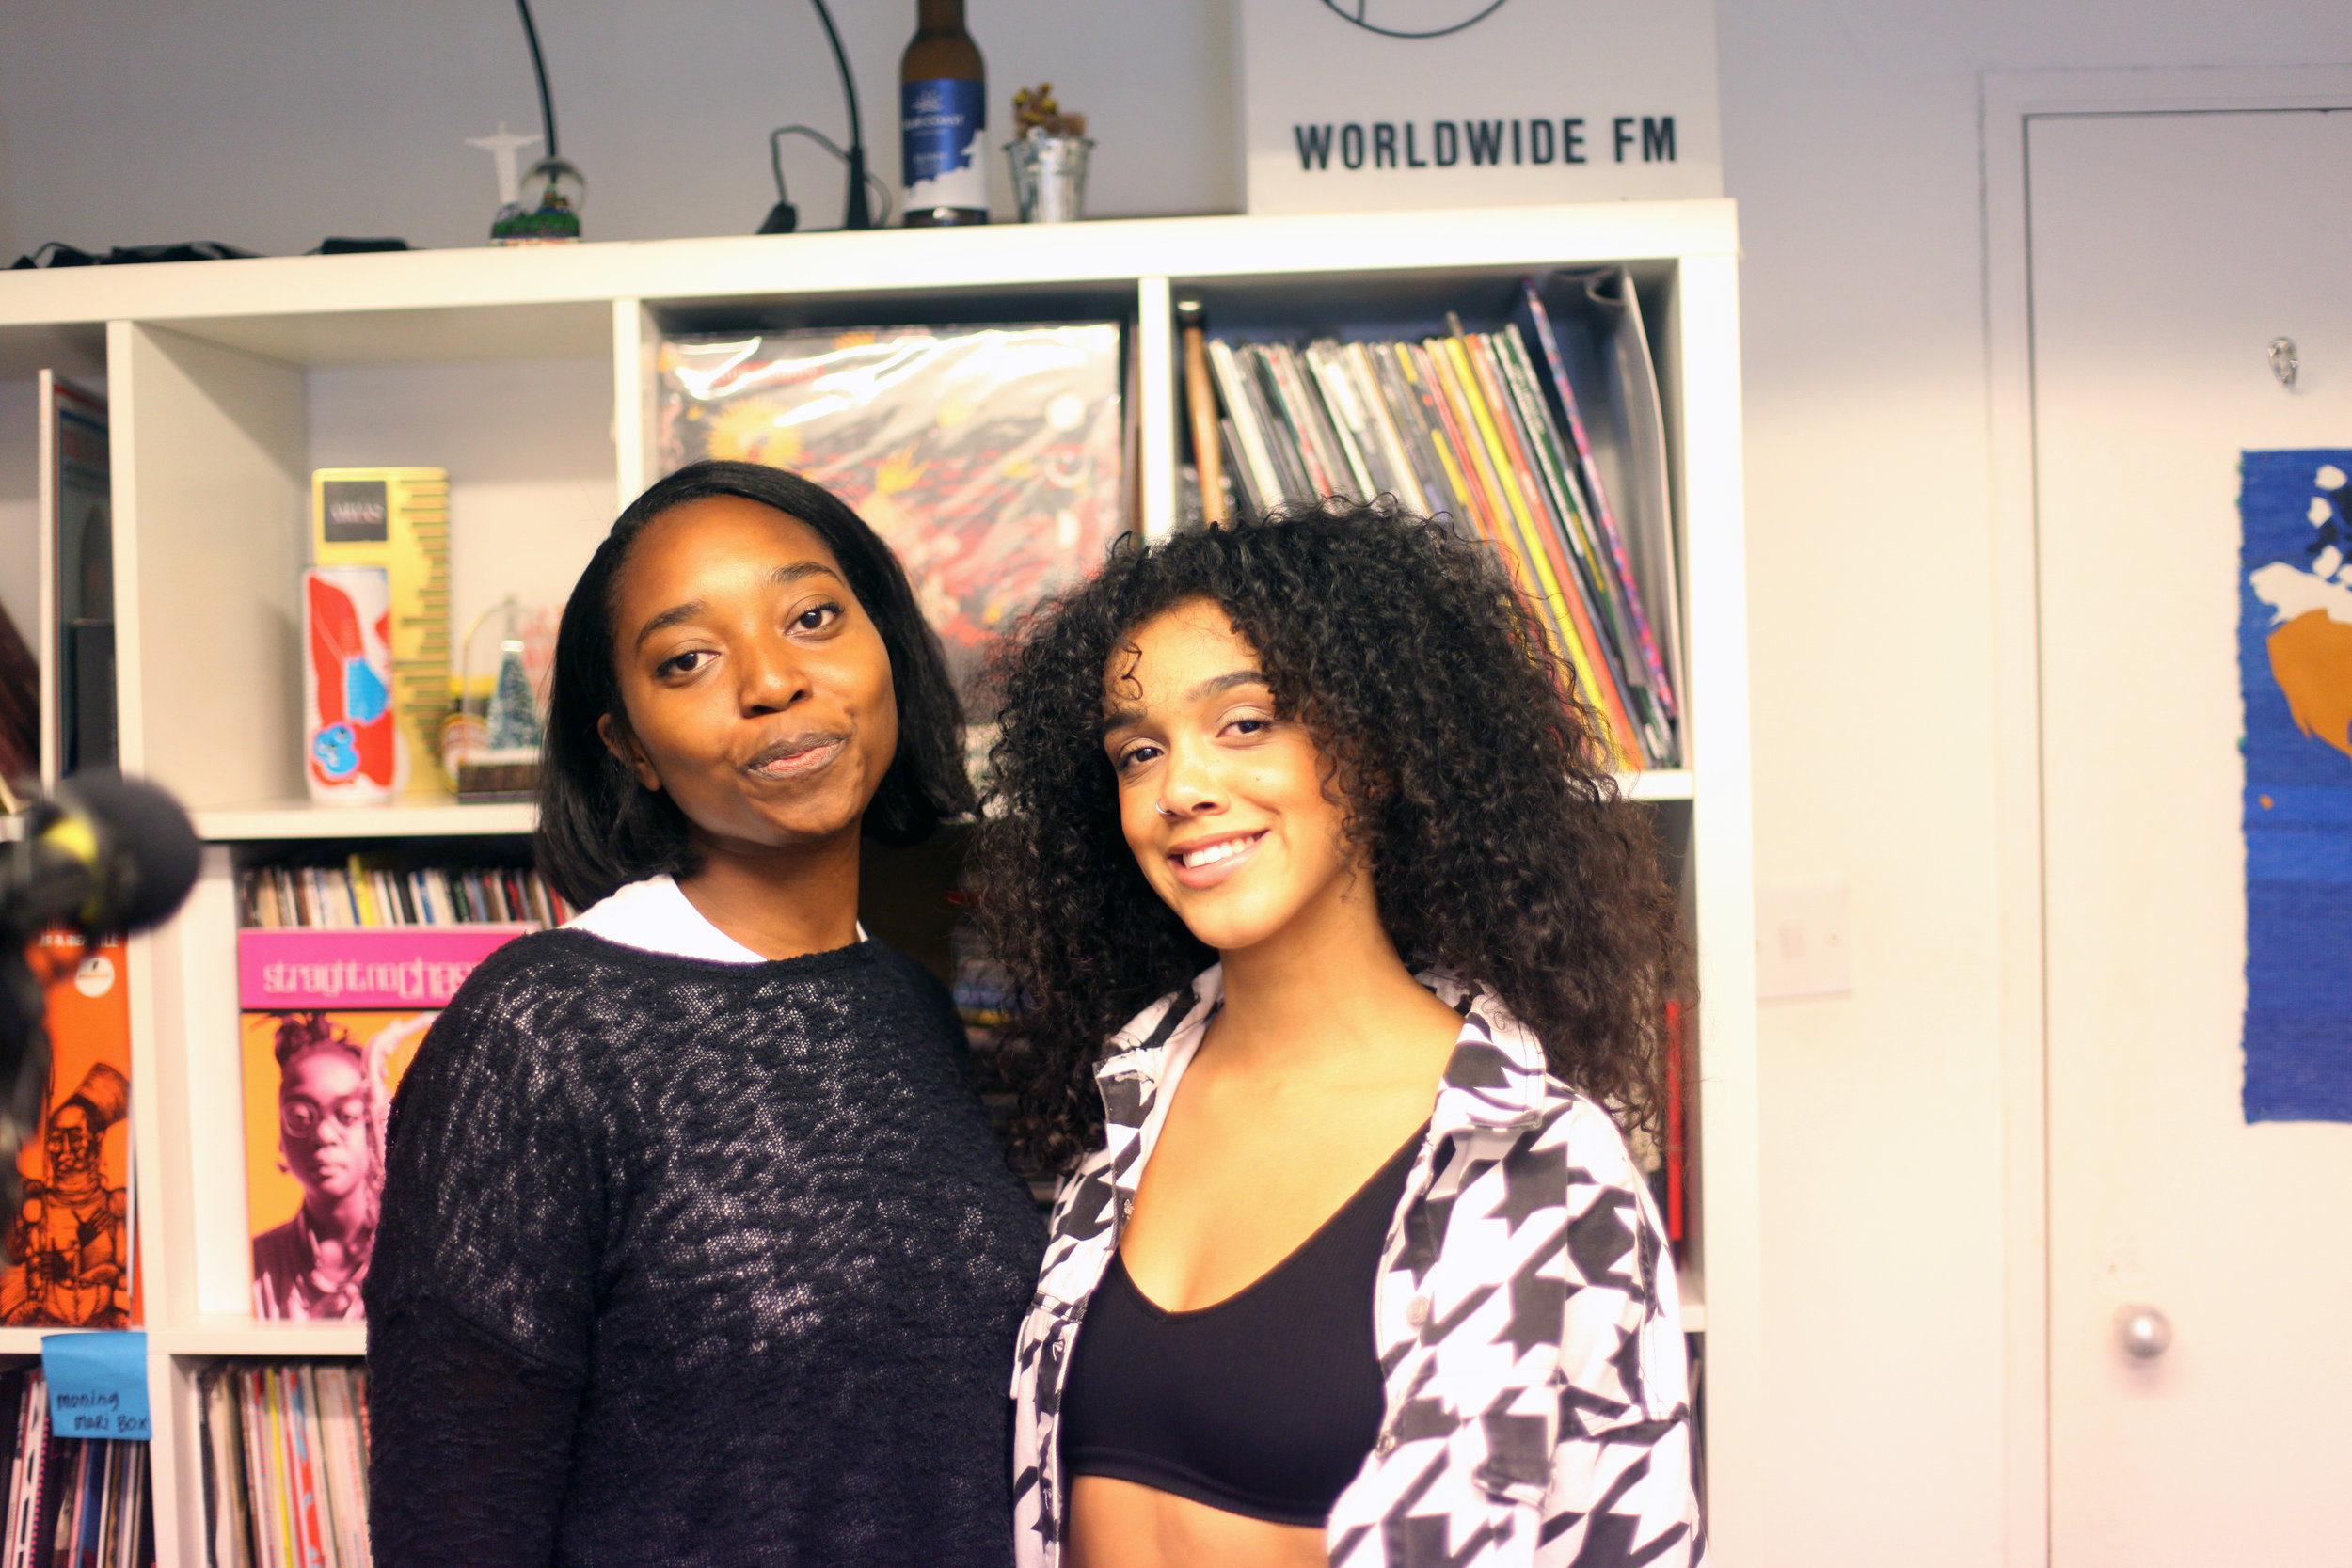 Erica McKoy and Ruby Francis